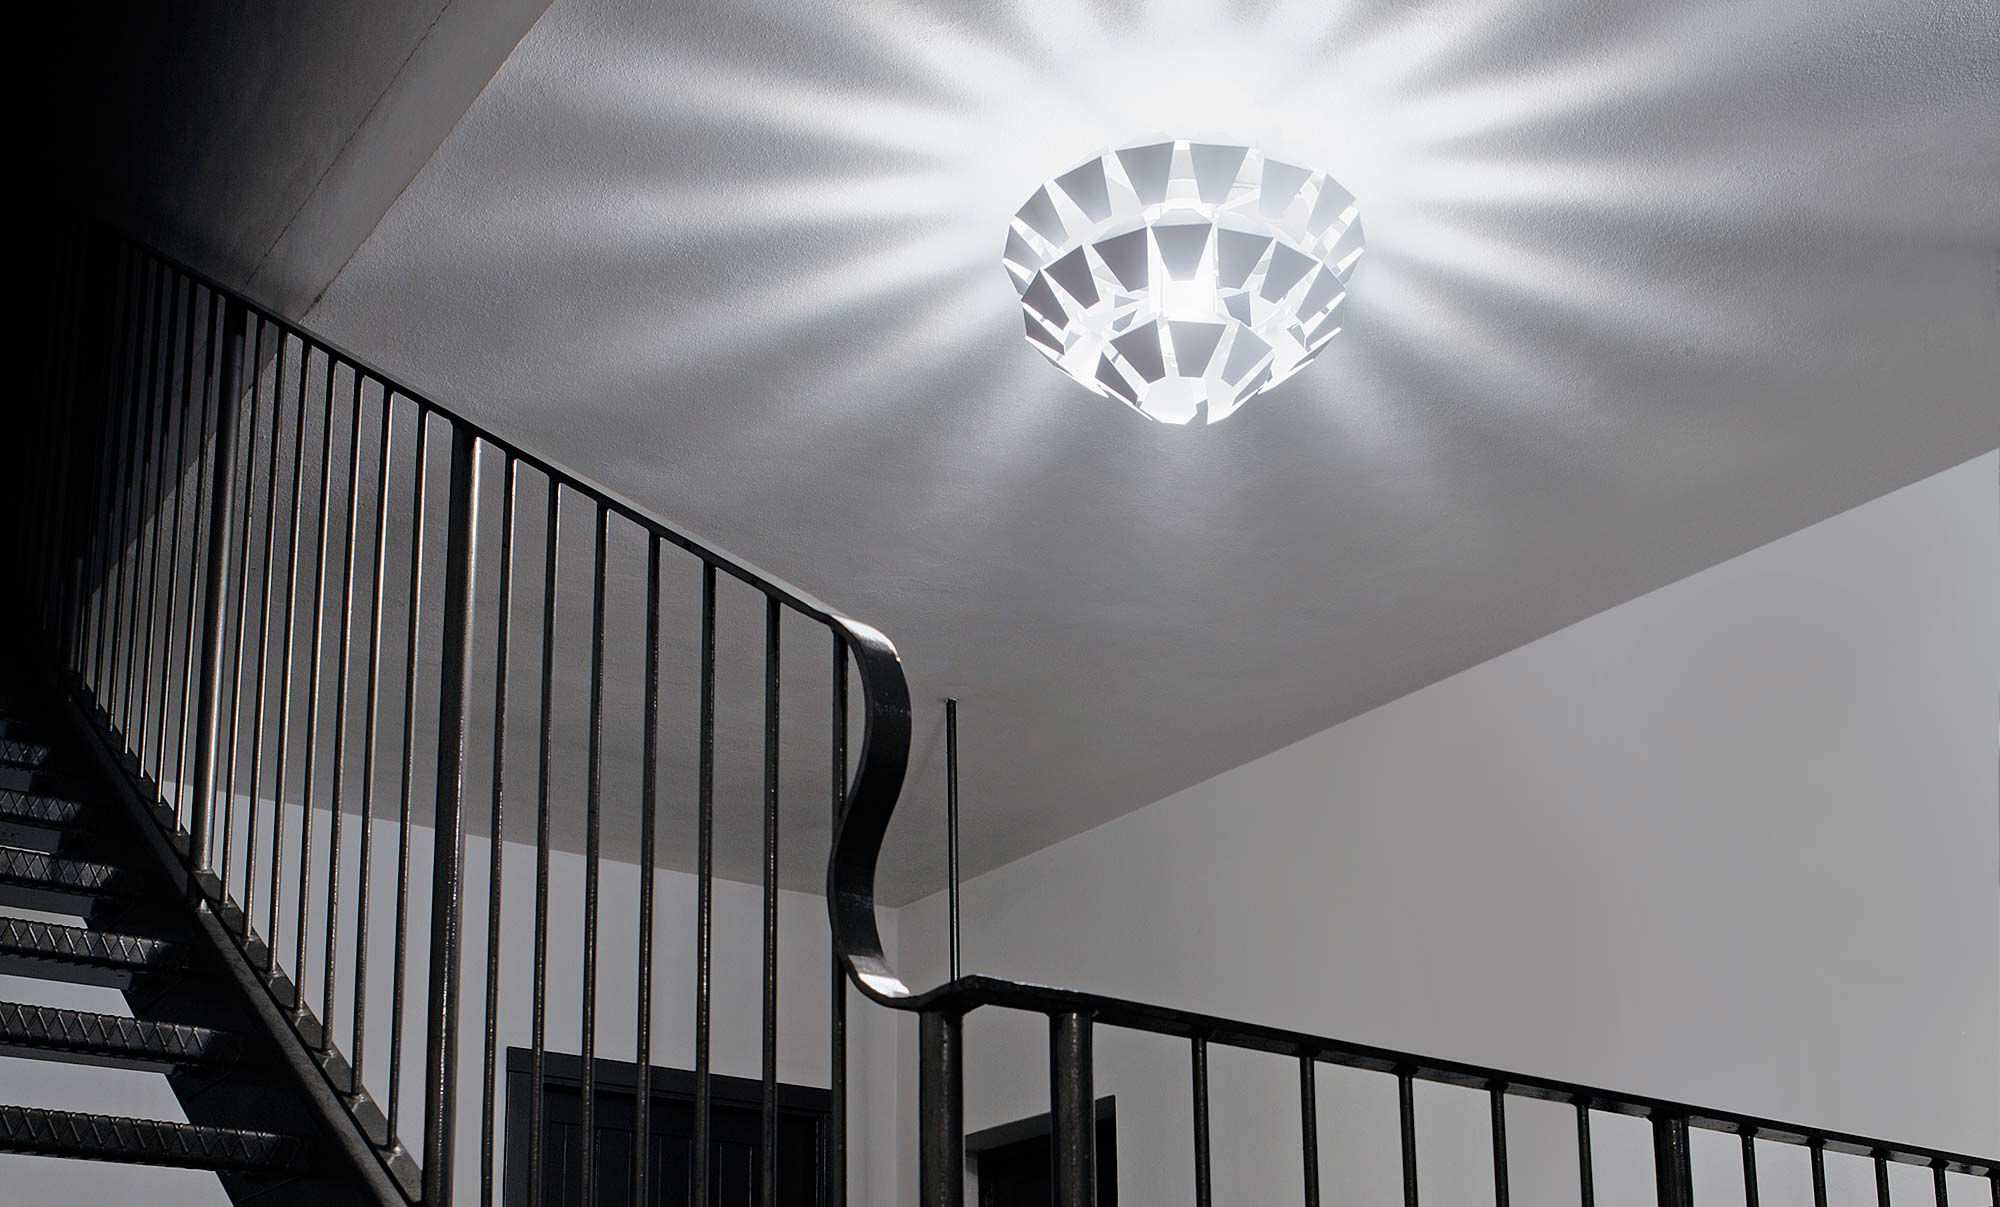 Plafoniere Led Da Interni : Plafoniera moderna in metallo verniciato led da interno